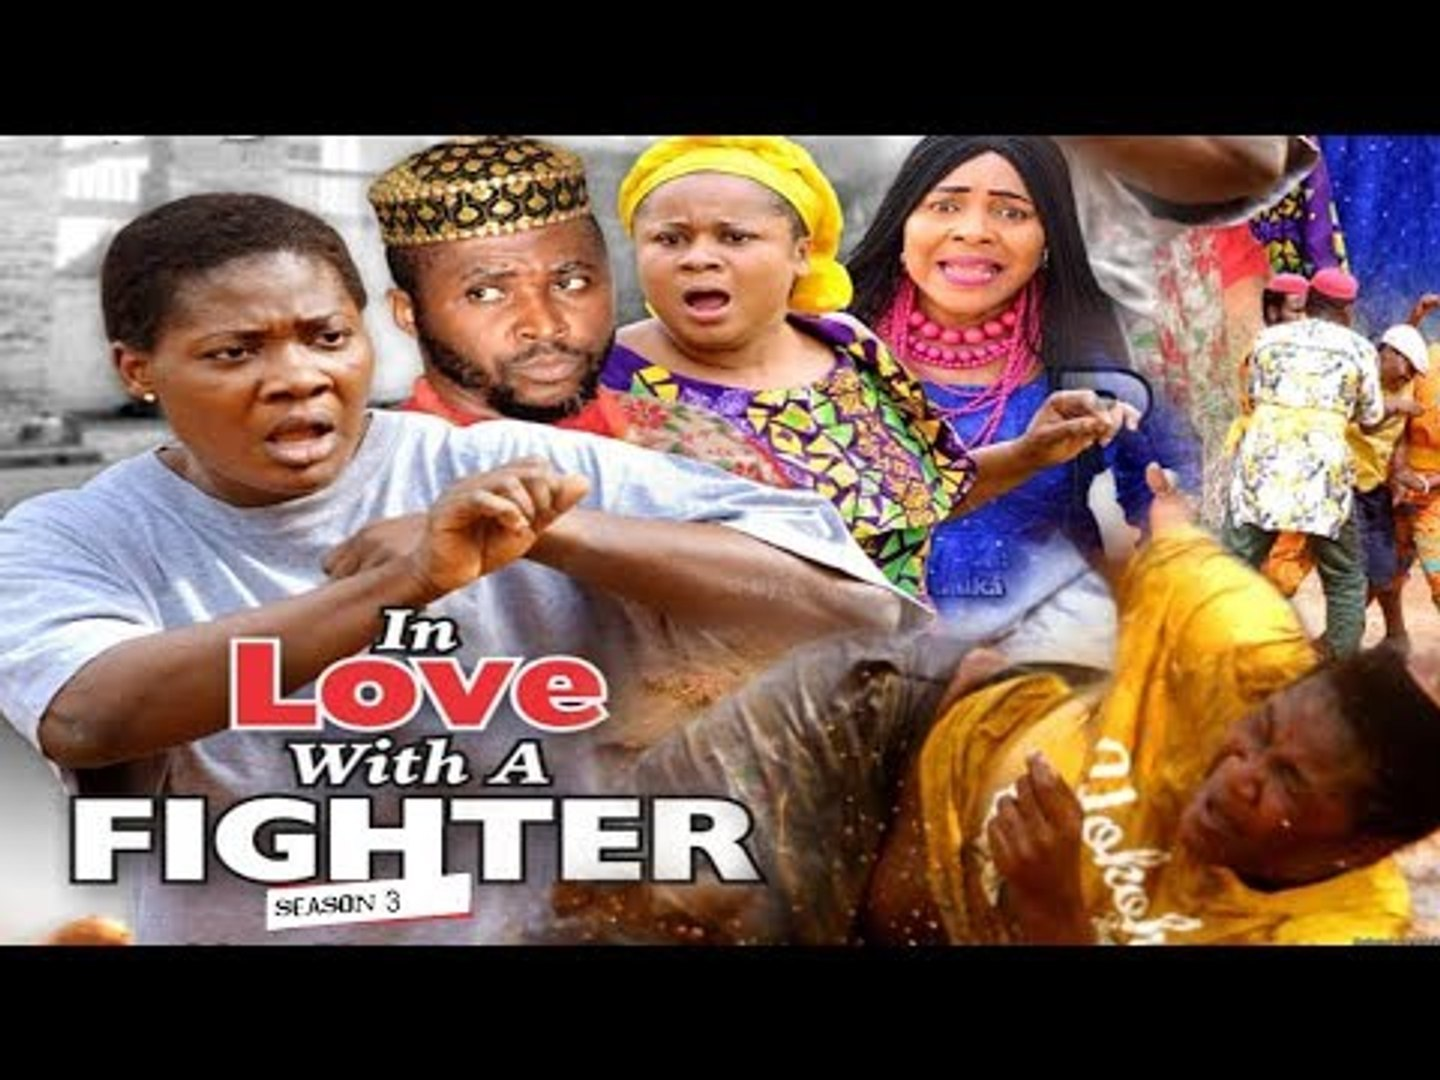 IN LOVE WITH A FIGHTER 3 - 2018 LATEST NIGERIAN NOLLYWOOD MOVIES    TRENDING NOLLYWOOD MOVIES